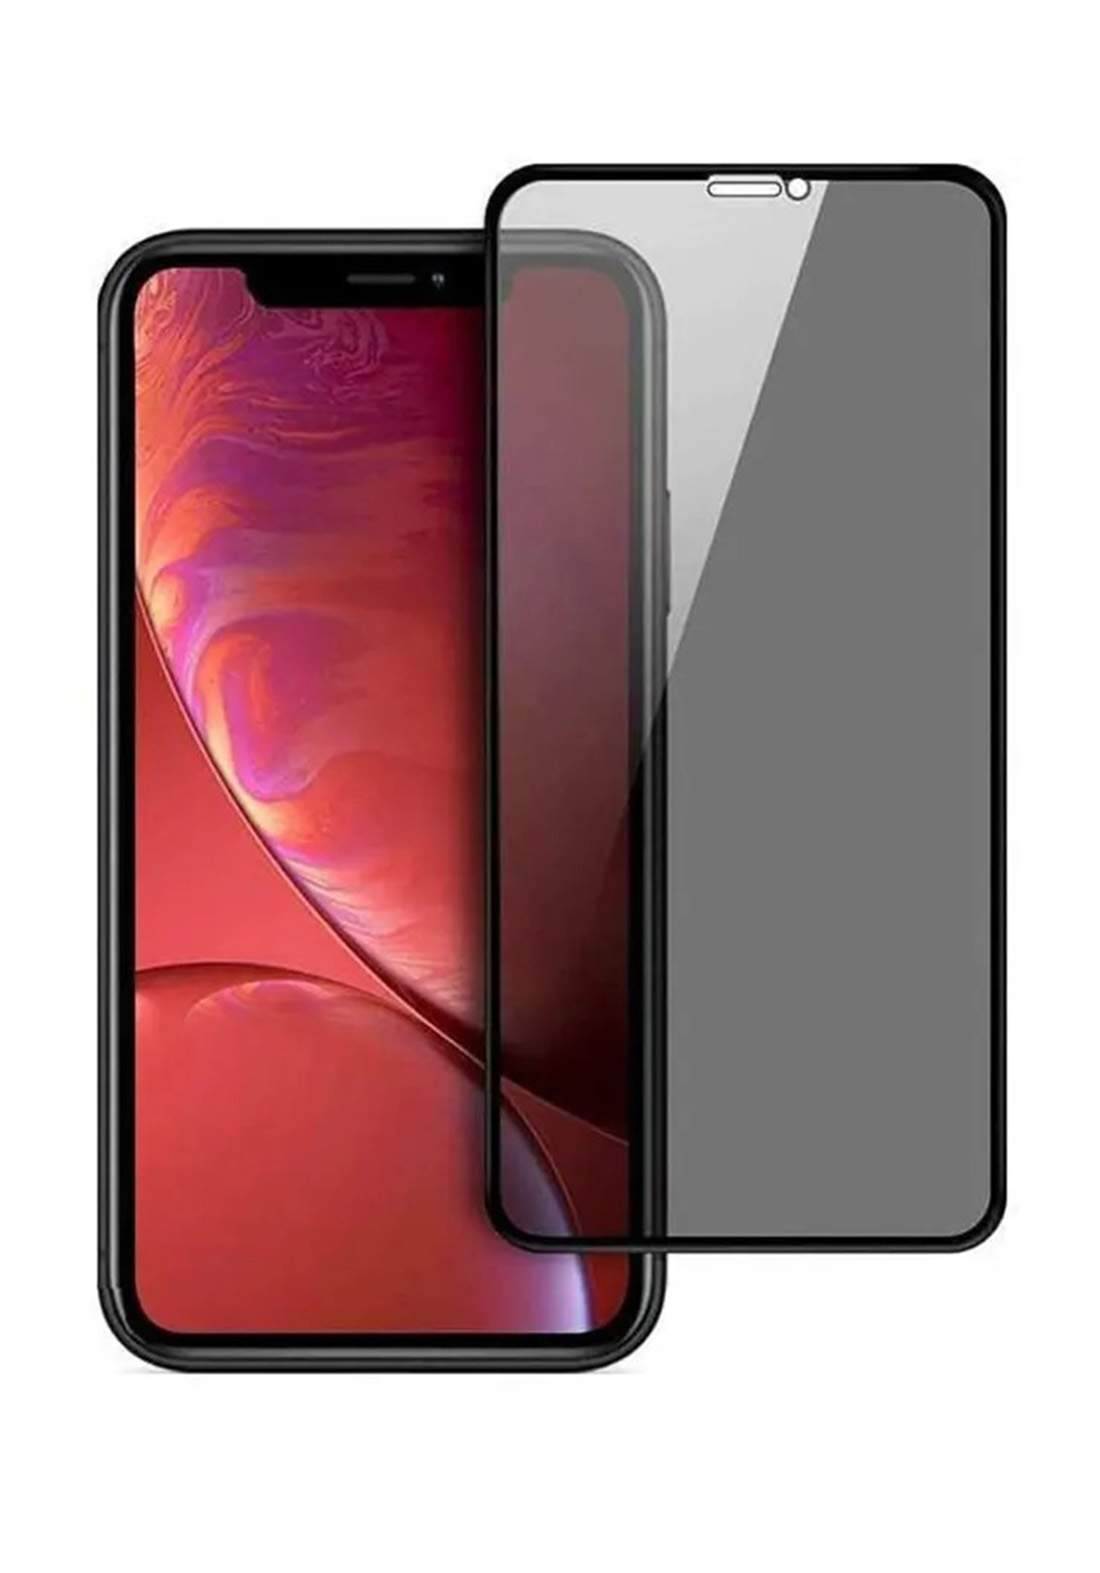 Optiva Privacy Glass Screen Protector For iPhone 11 Pro Max - Black واقي شاشة